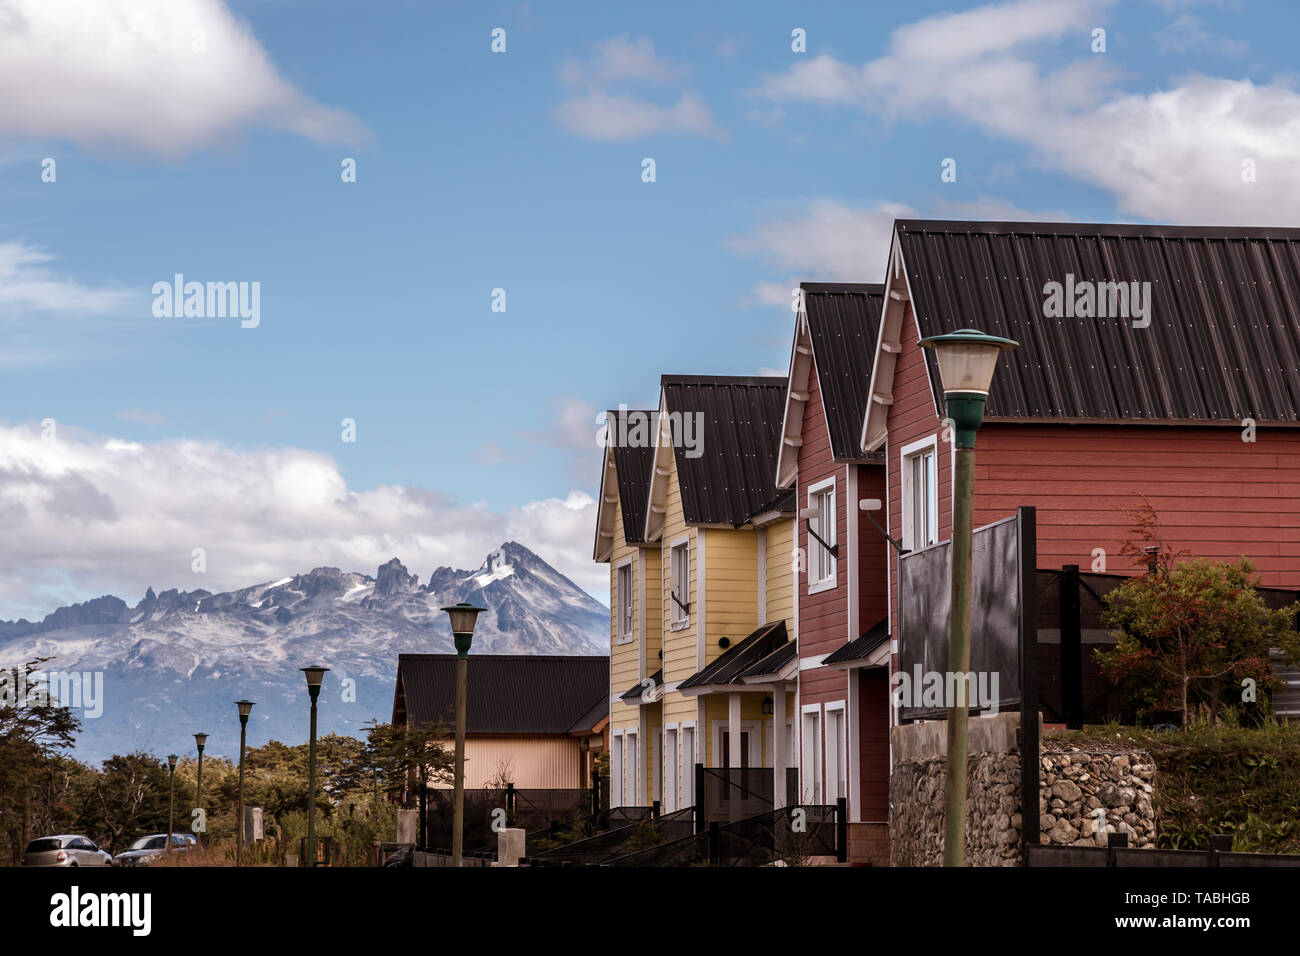 Argentina, Ushuaia, End of the World, neighborhood, houses, mountains, Patagonia, view. - Stock Image